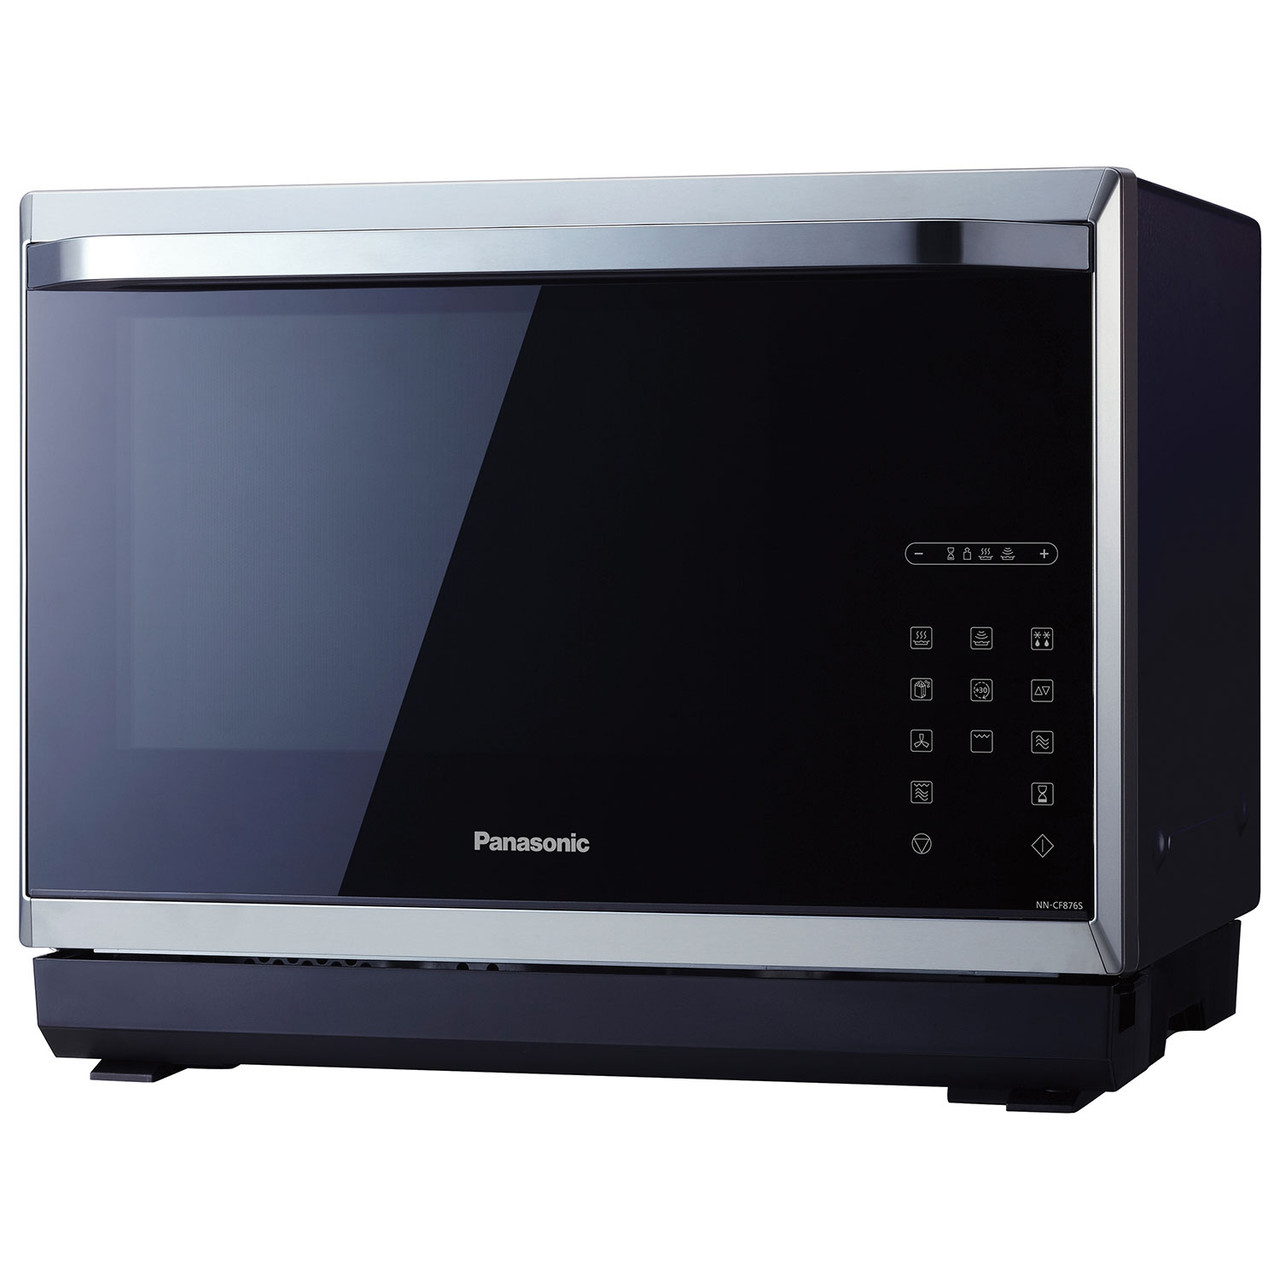 Panasonic 2 Level Combination Oven With Convection Inverter Technology Nncf876s